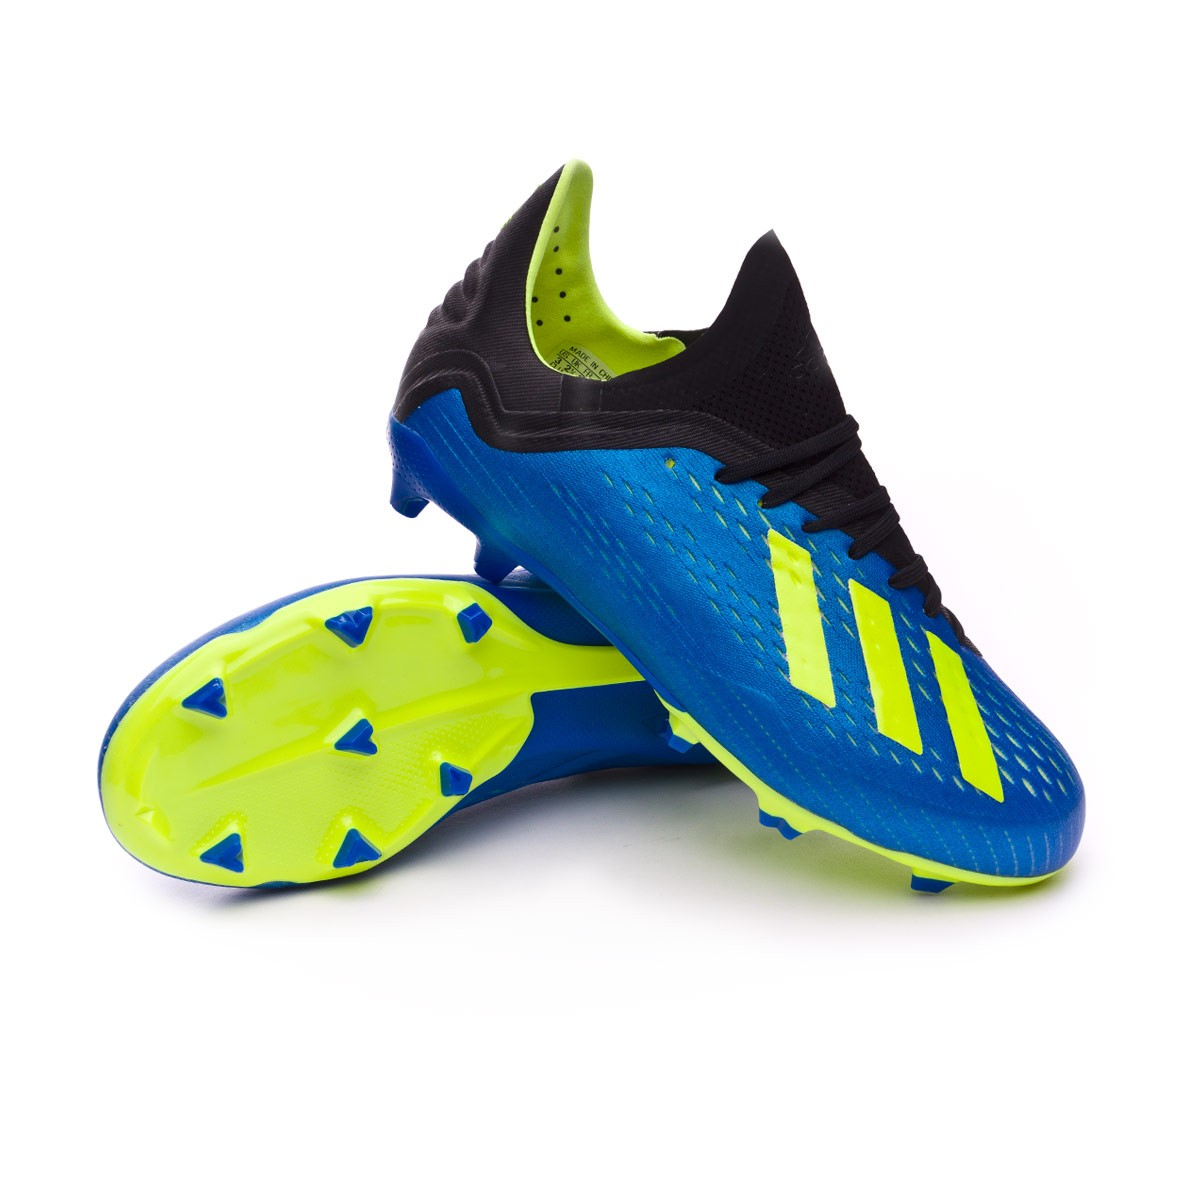 outlet store efbb7 a3647 adidas Kids X 18.1 FG Football Boots. Foot blue-Solar yellow-Black ...